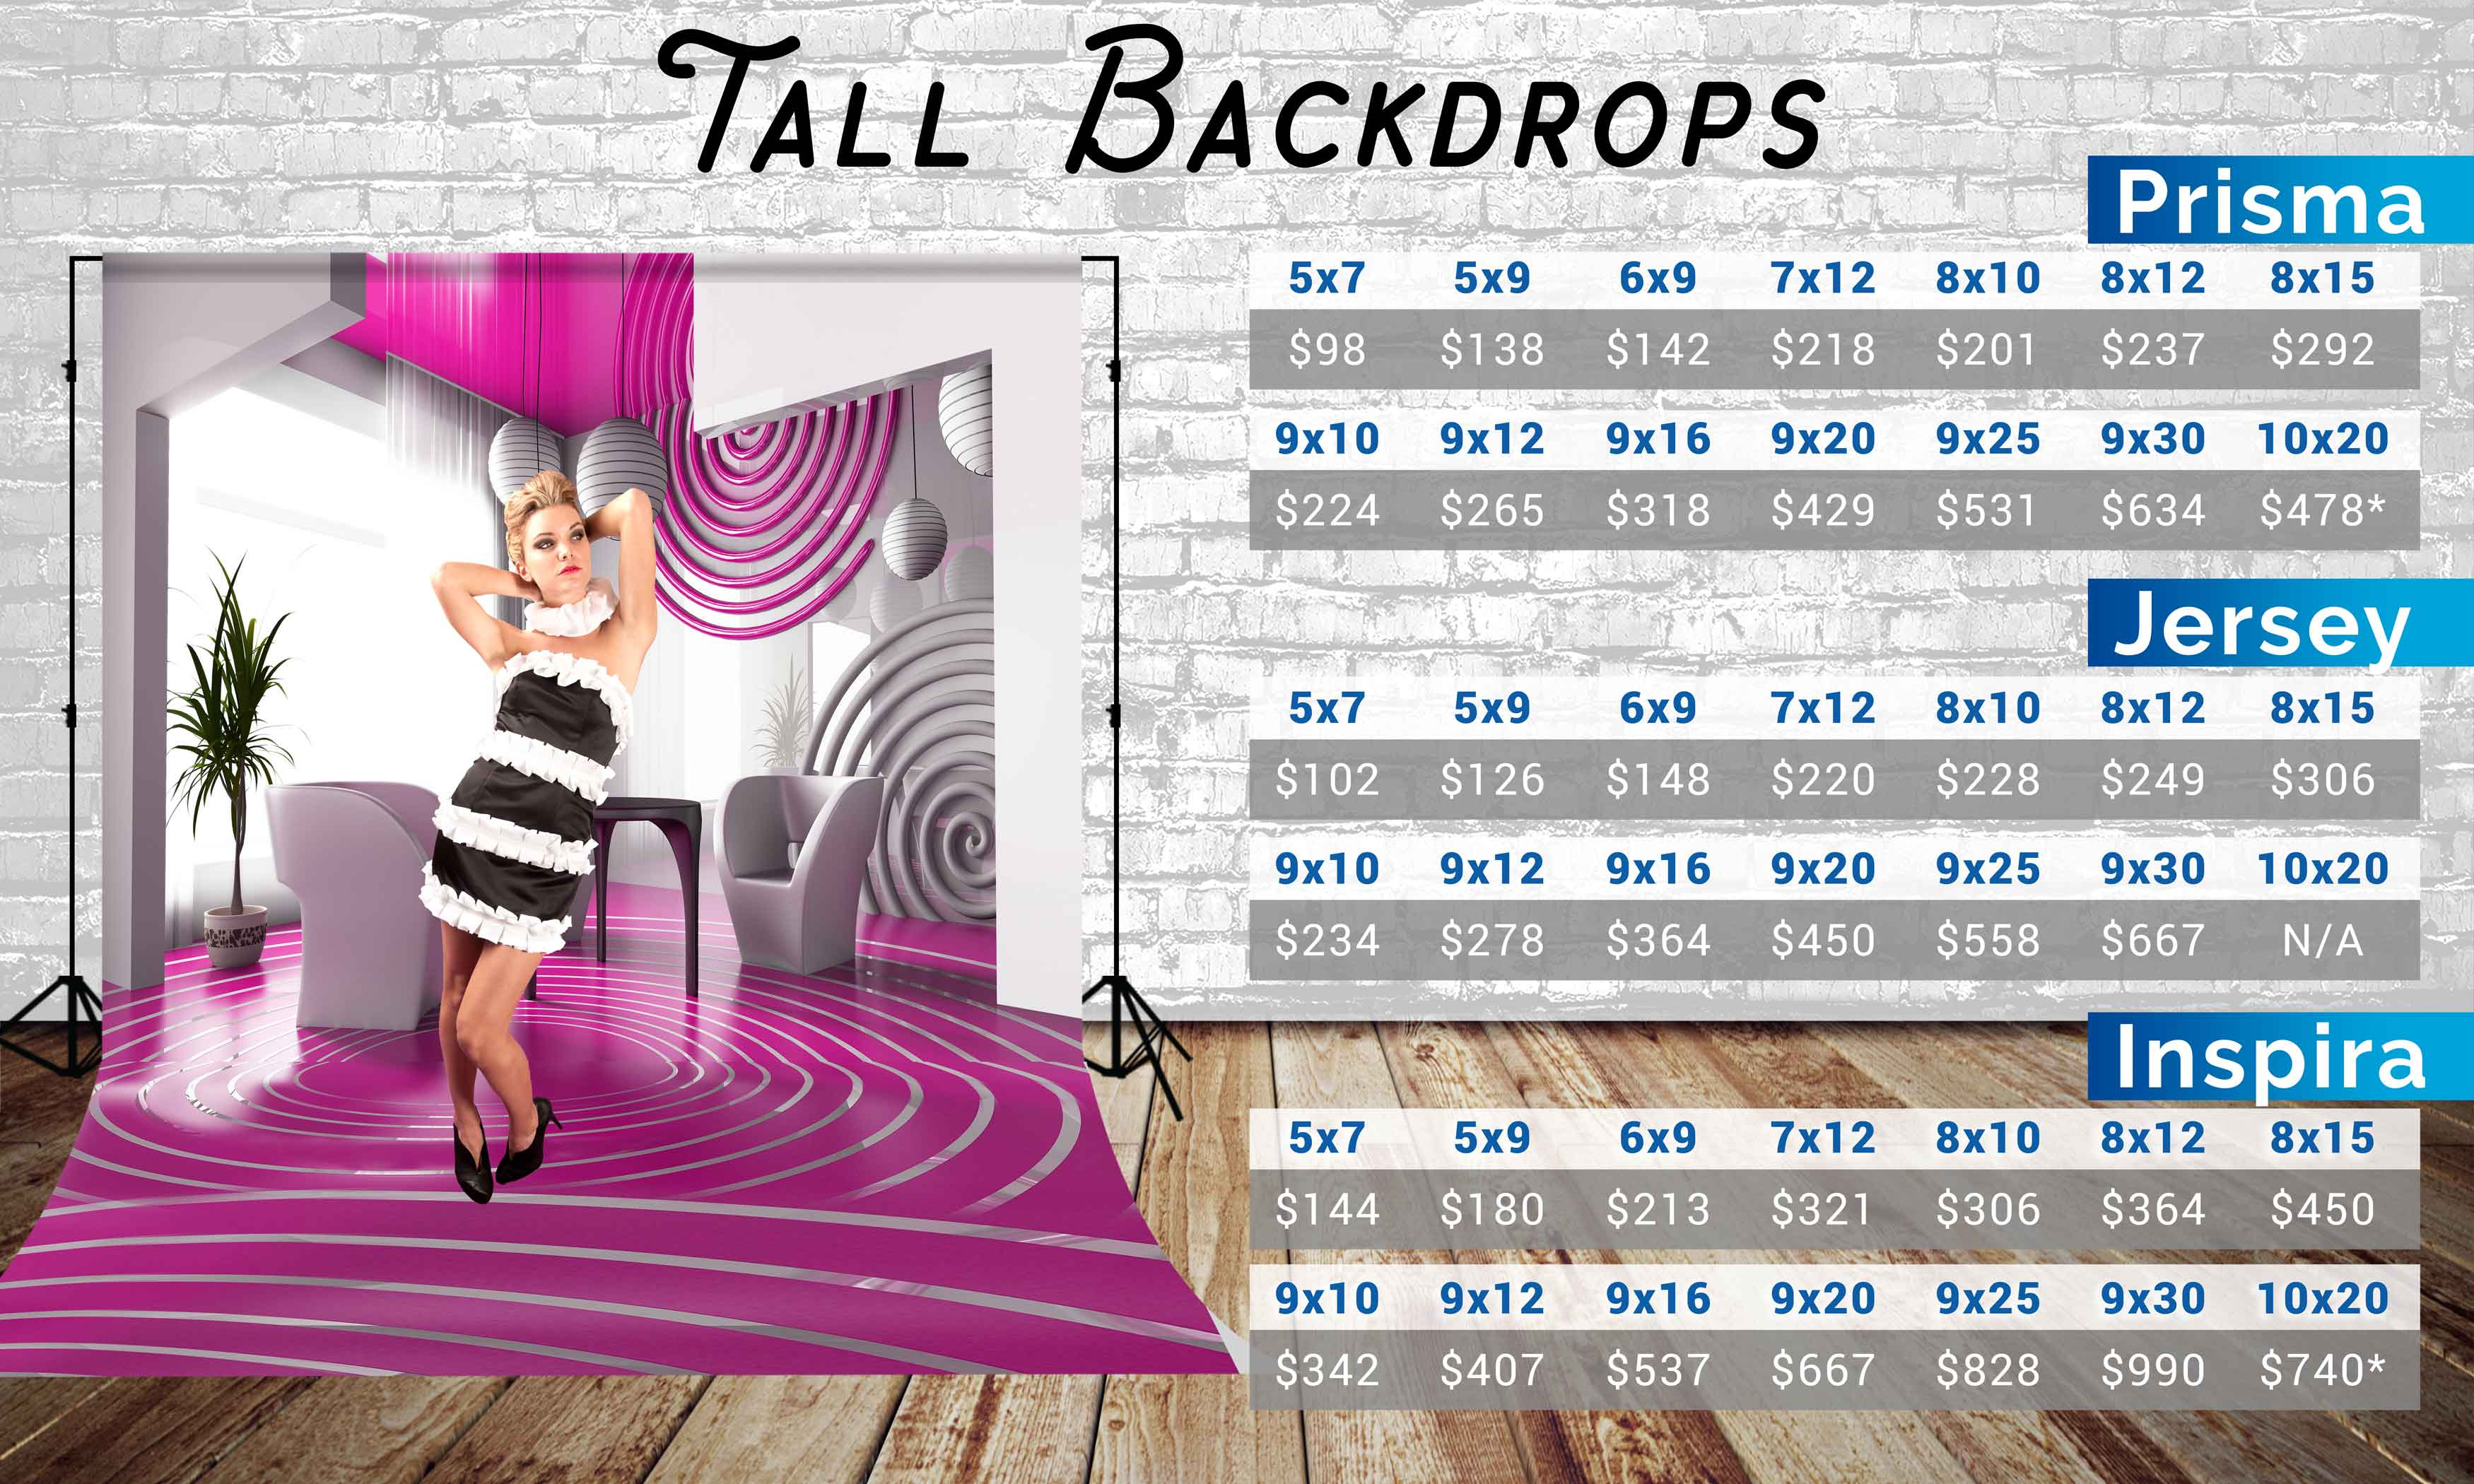 Photo Pie Tall Backdrop Prices